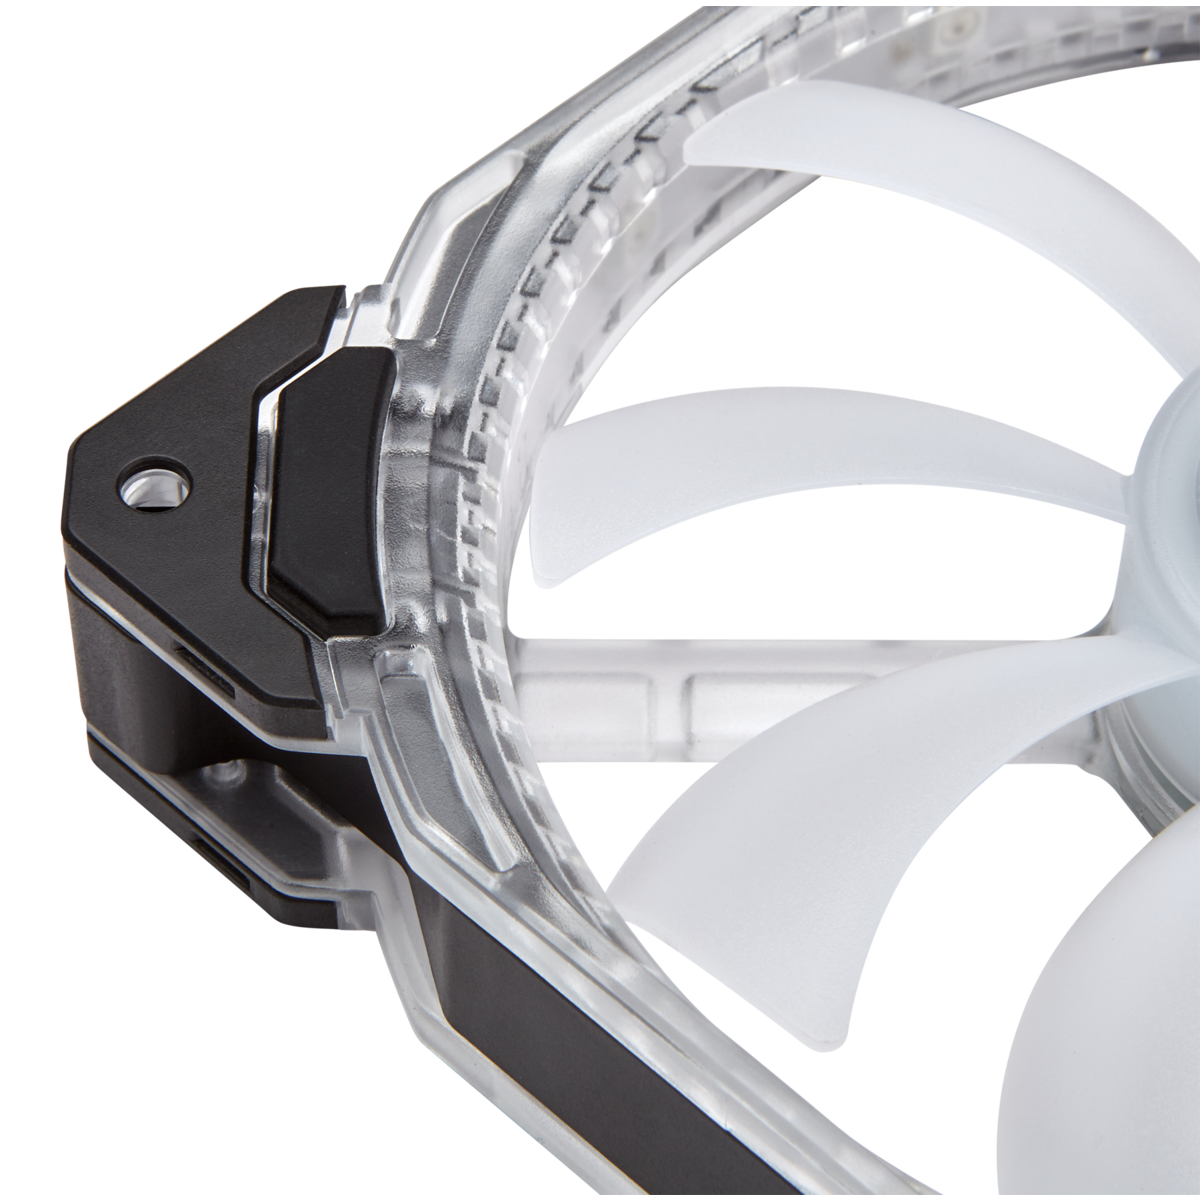 Corsair HD140 RGB LED 140mm Fan - 2 FAN - có Controller